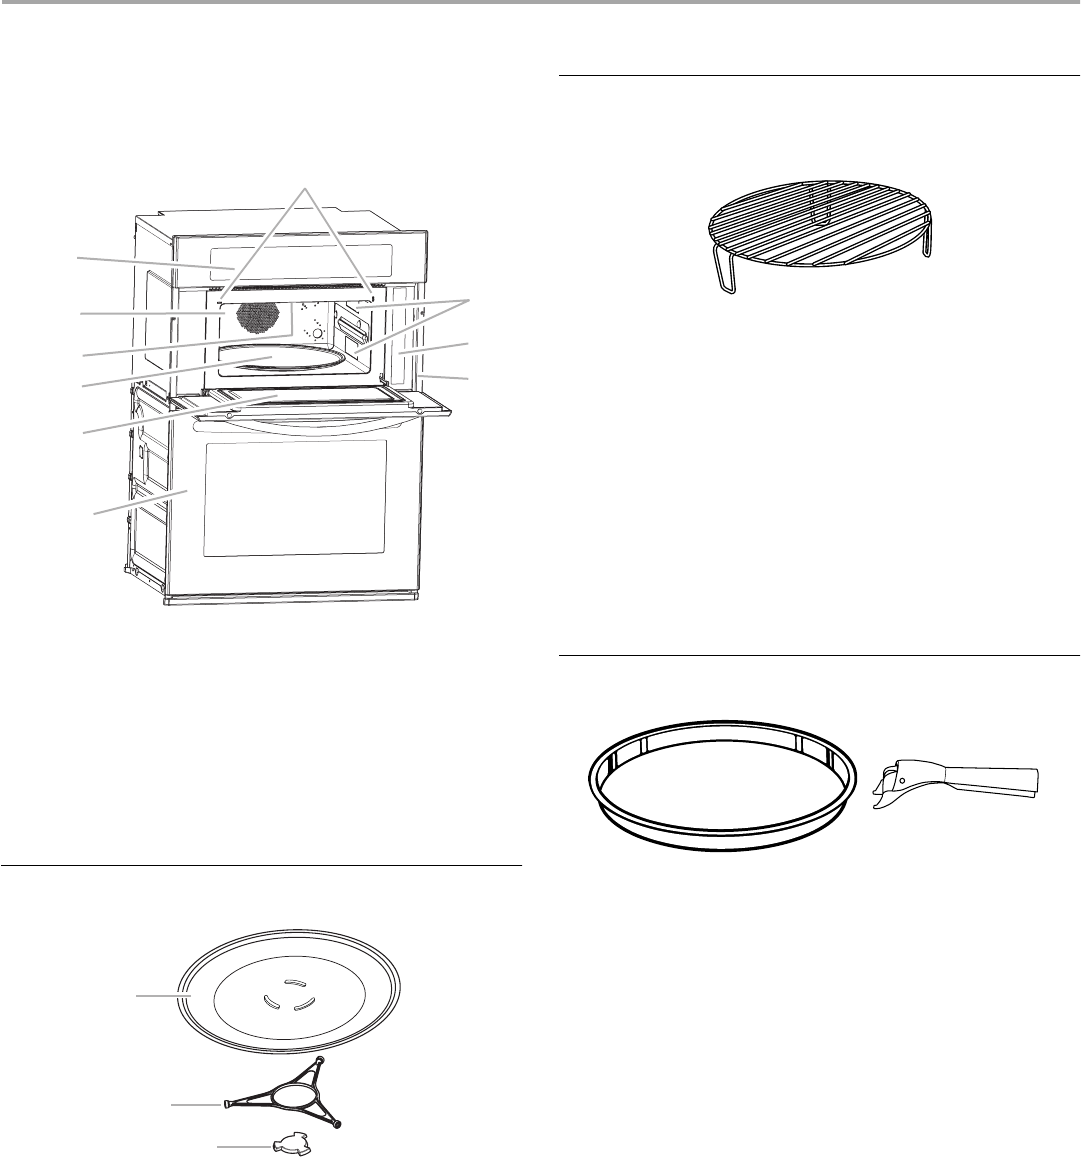 Page 5 of KitchenAid Convection Oven KBHS109 User Guide